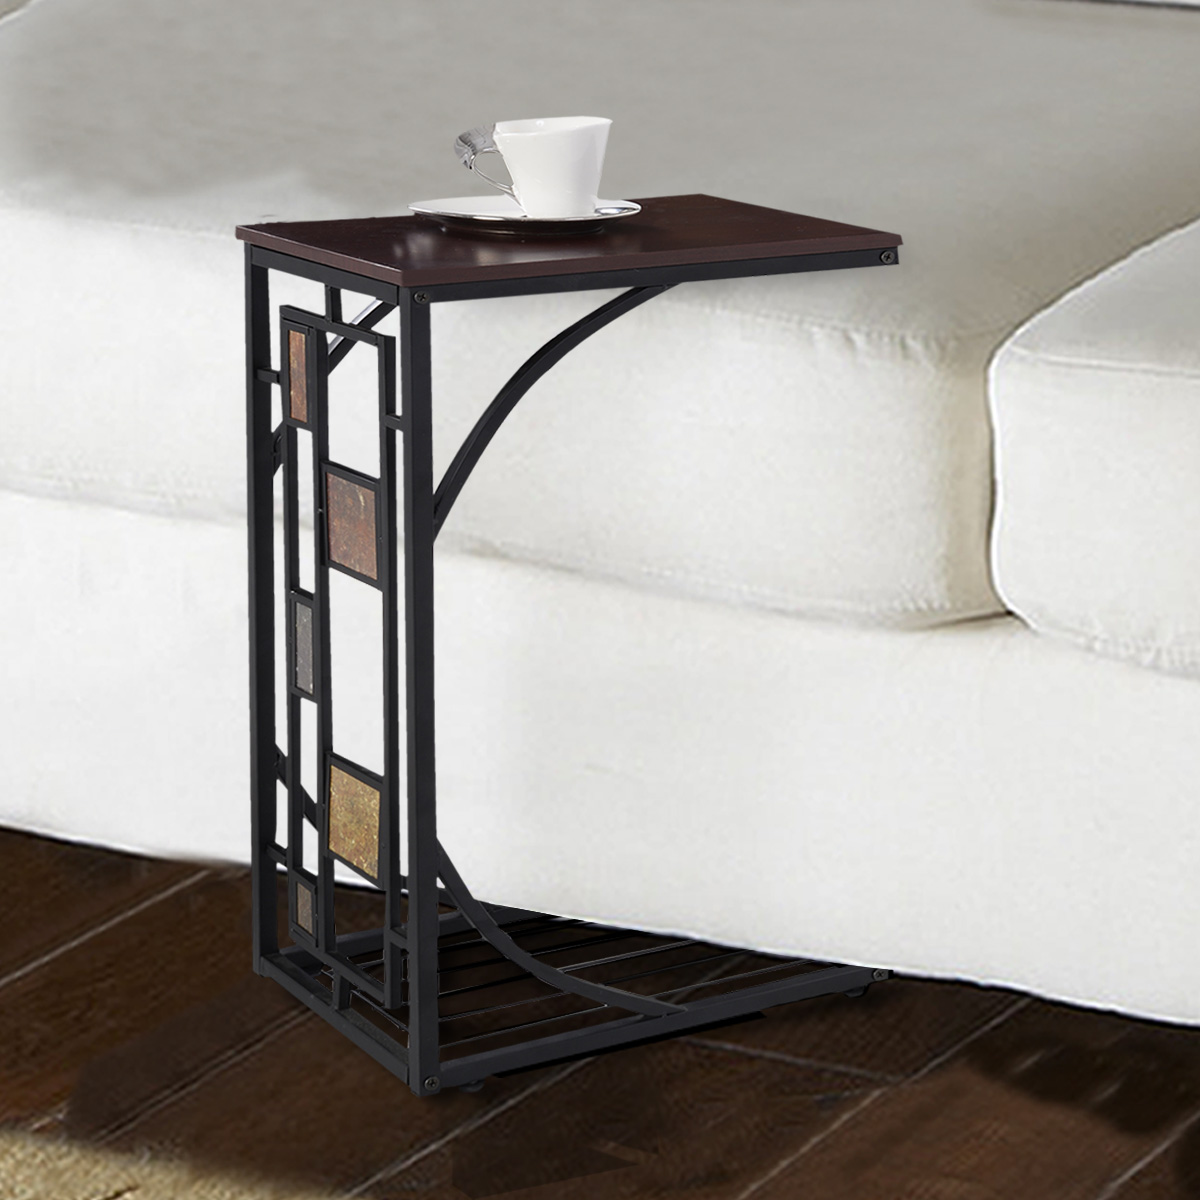 Bedroom Furniture Tv tray Table